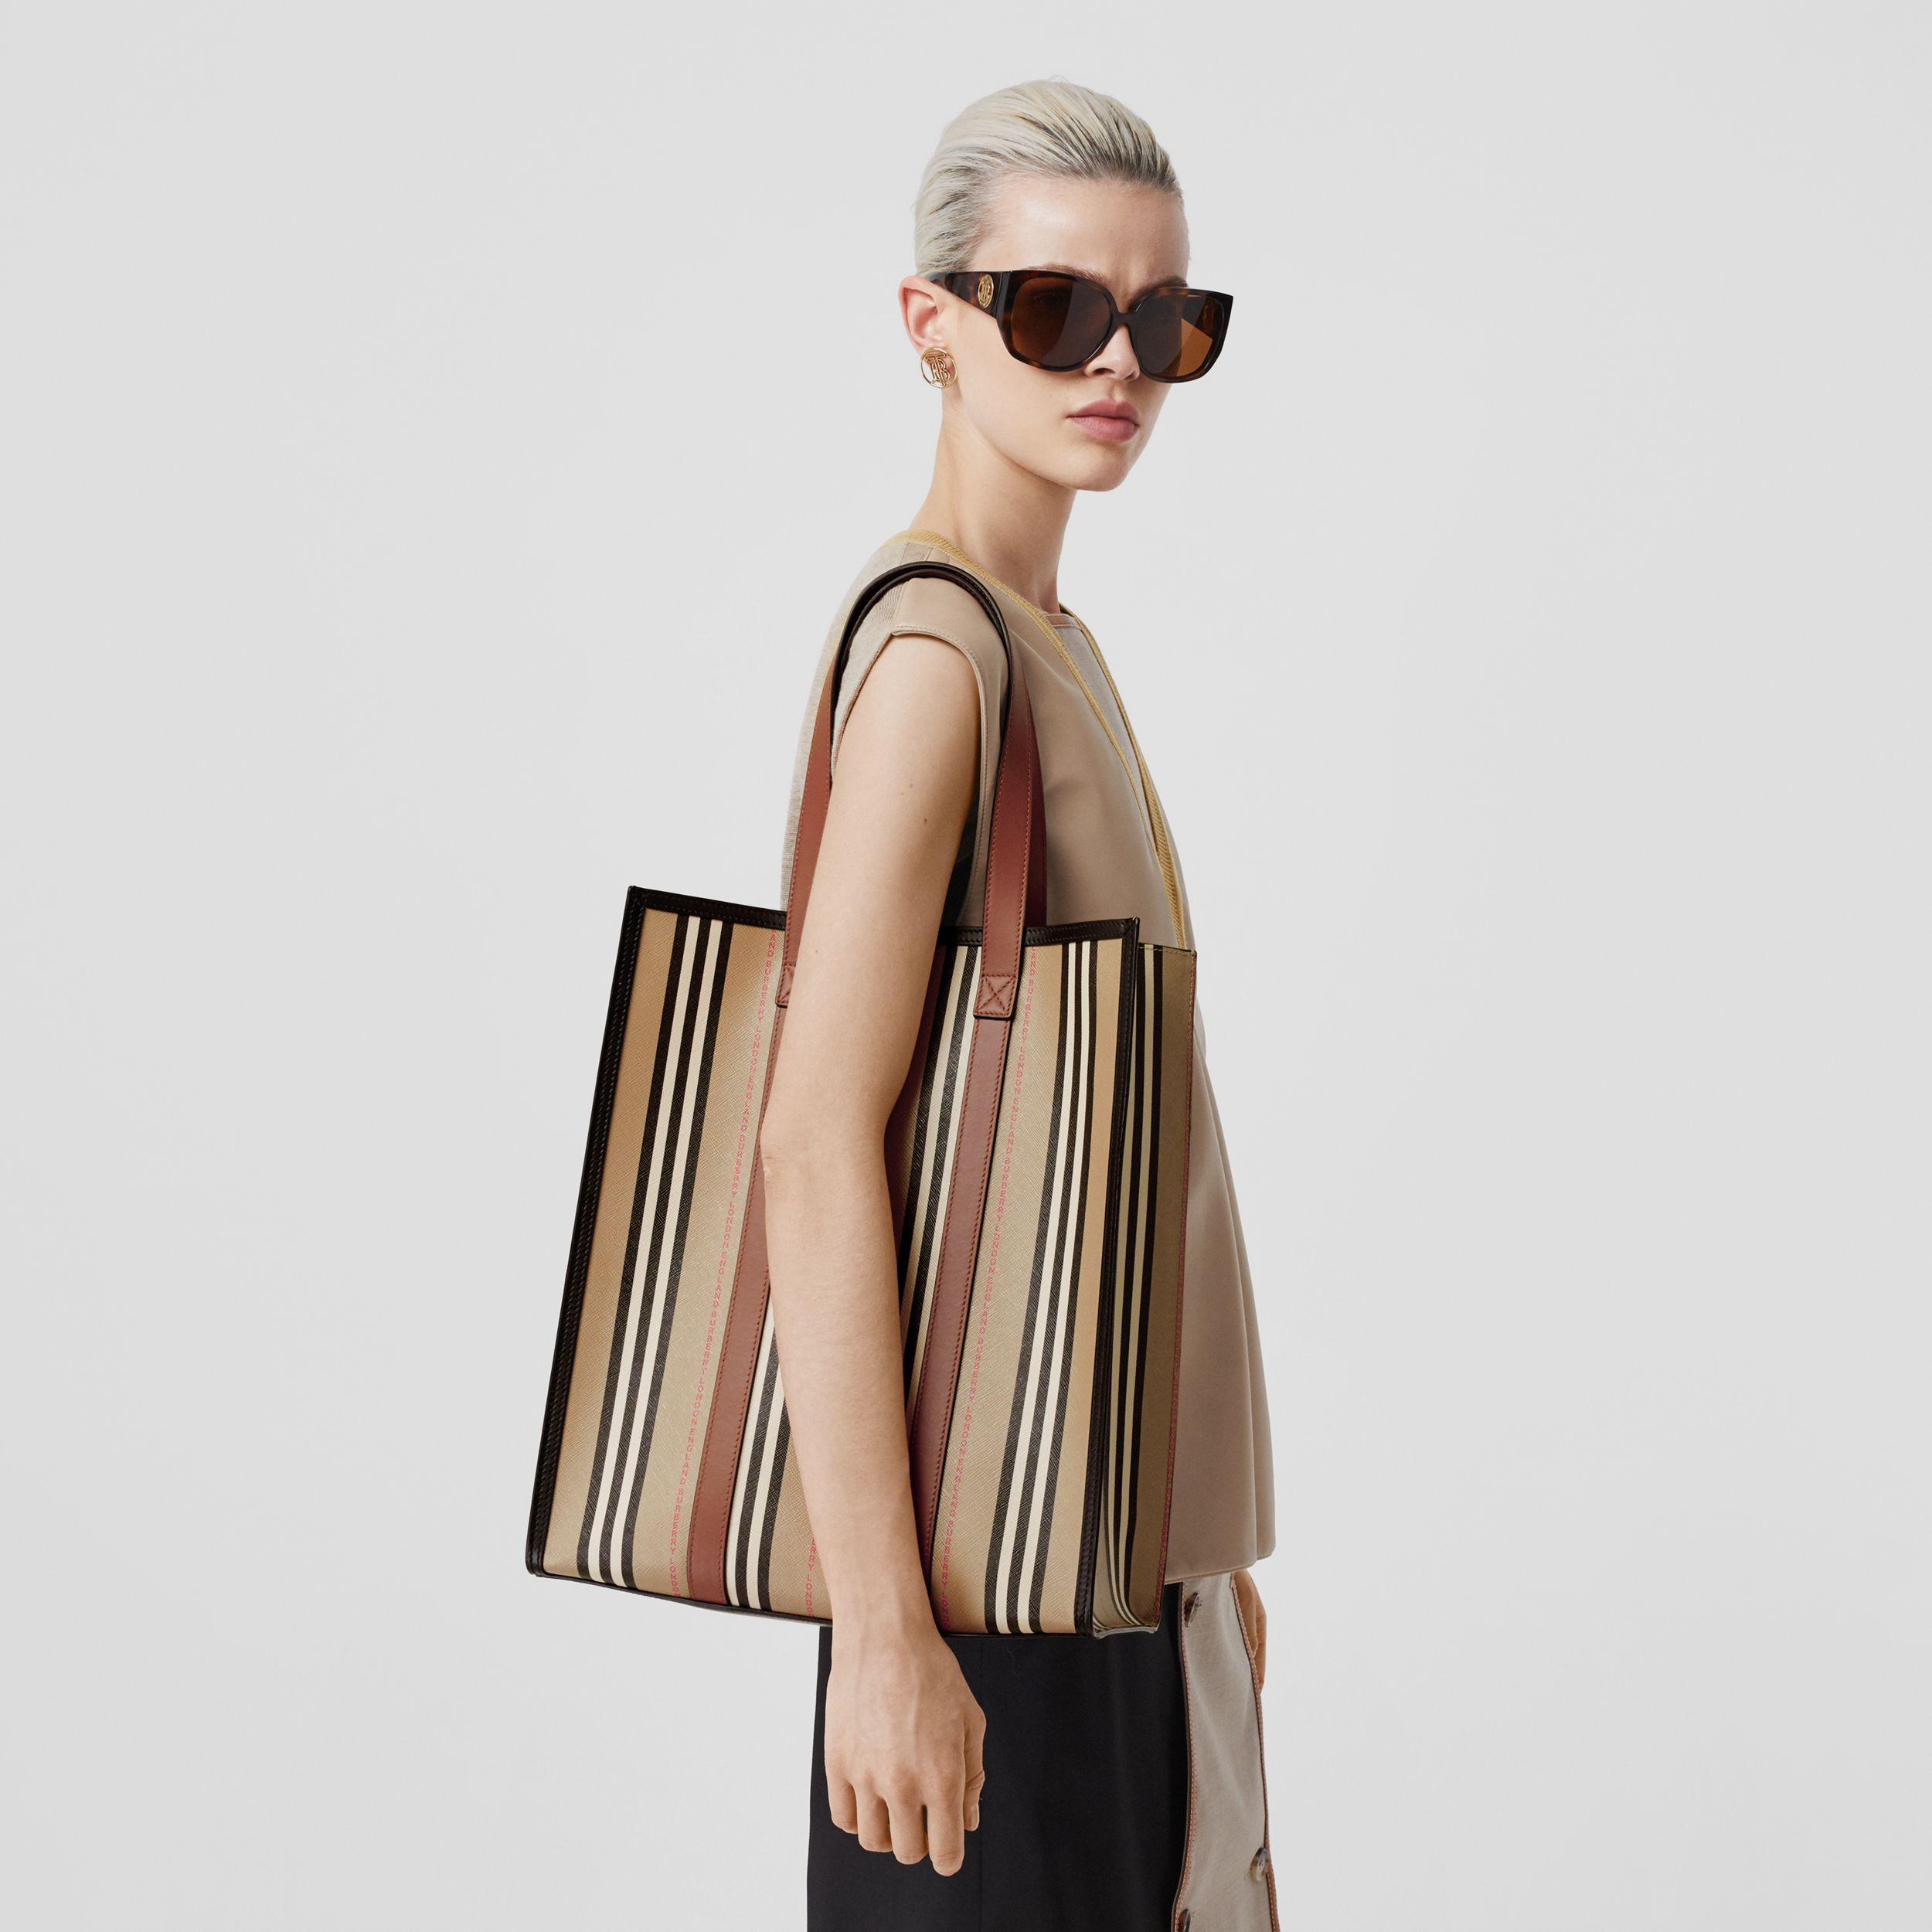 Logo and Stripe E-canvas Portrait Tote Bag in Tan/archive Beige - Women | Burberry - 3